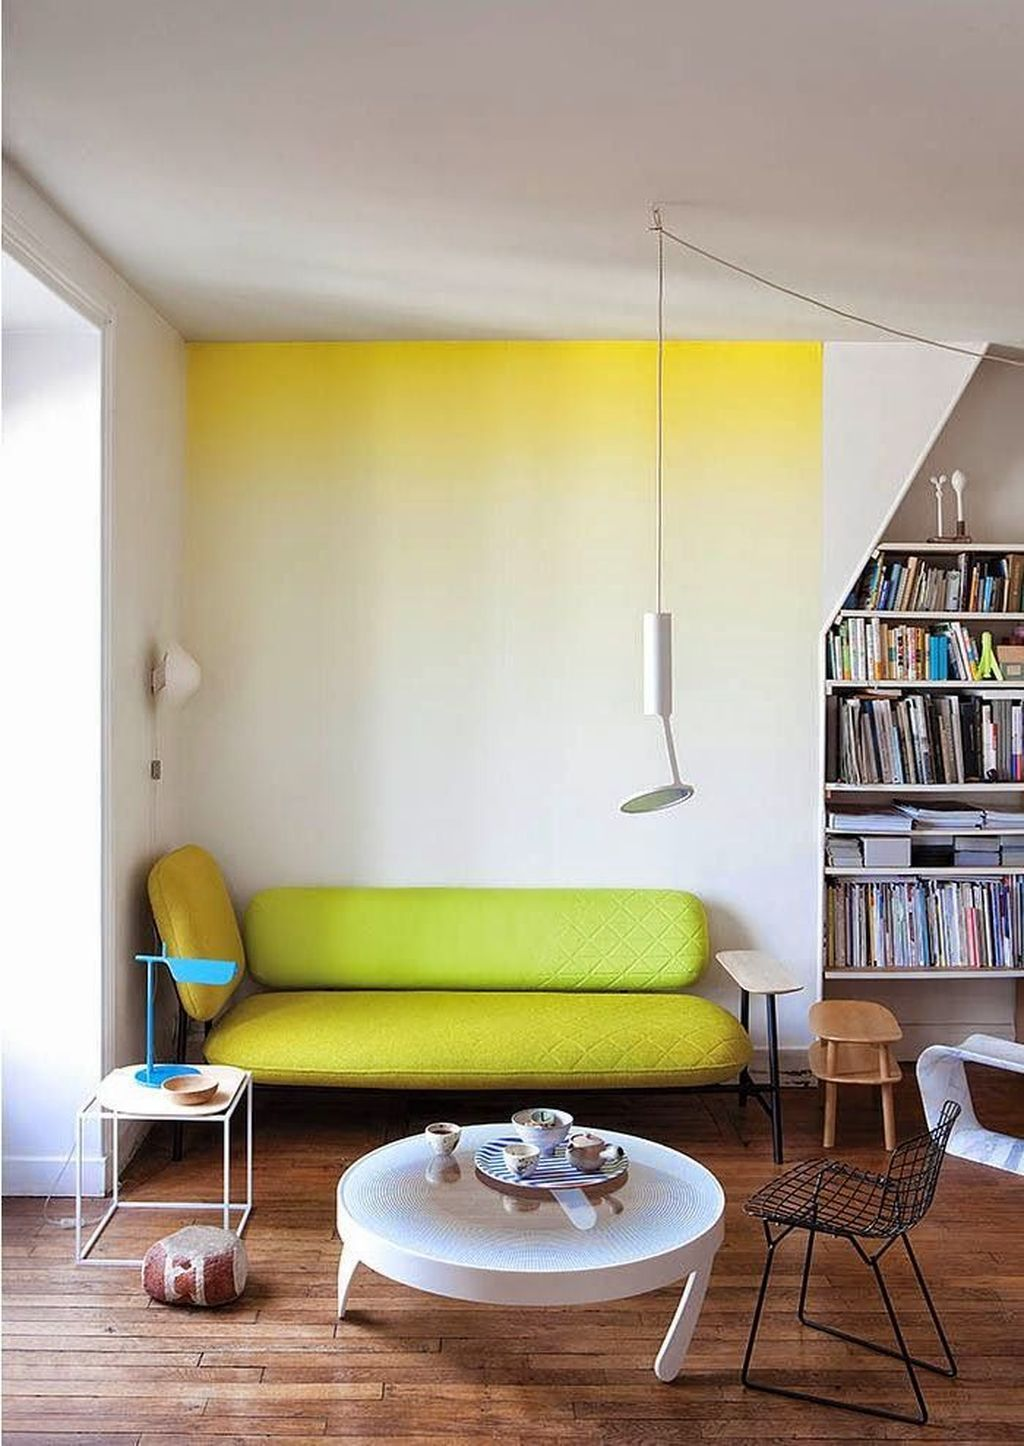 56 Beautiful Ombre Wall Paint Designs For Living Room | Pinterest ...